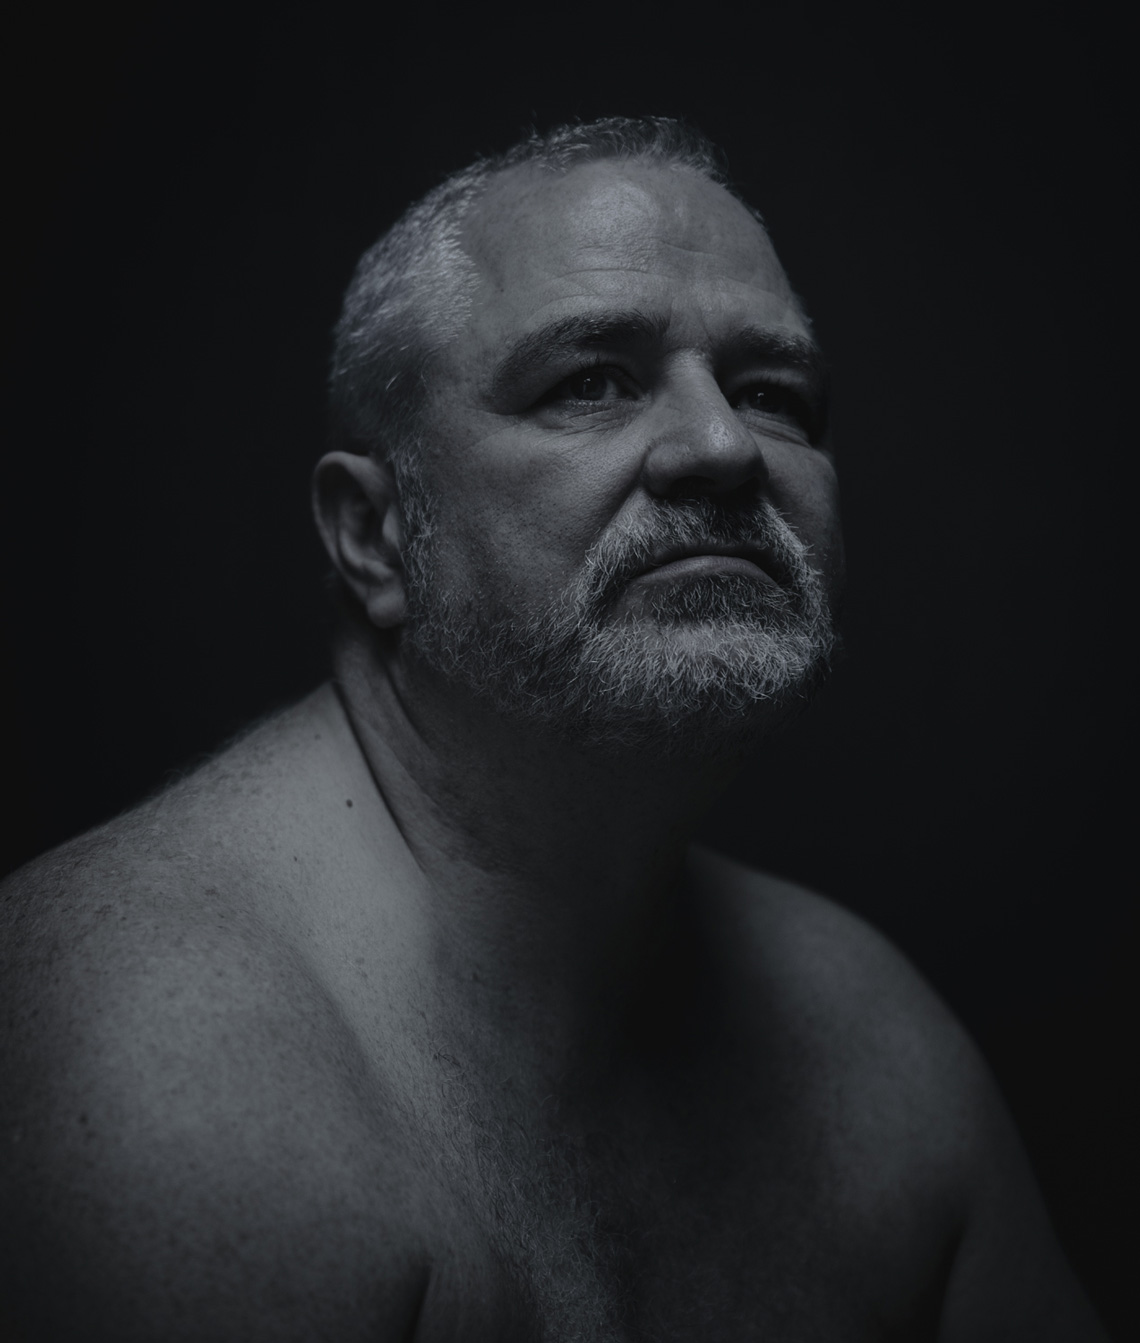 Dramatic portrait of  man with bare shoulders on dark background by Lenka Rayn H.